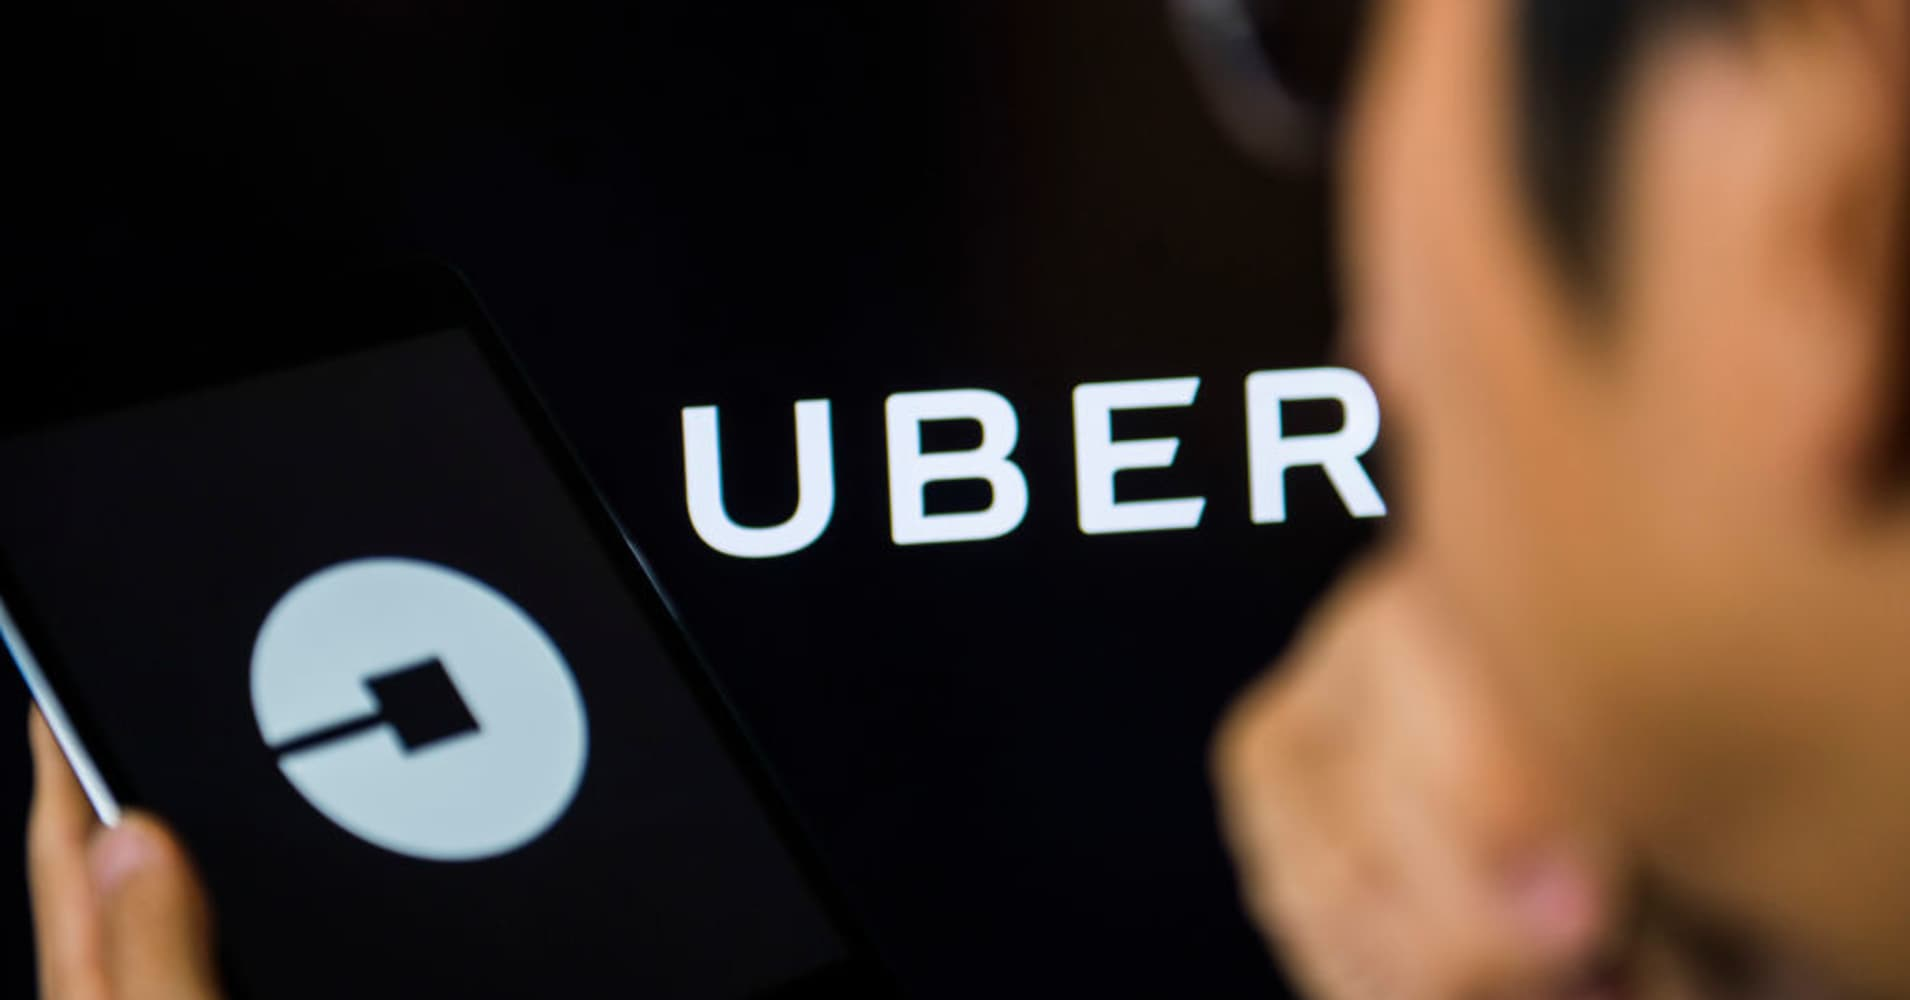 Uber hid cyberattack exposing 57 million people's data: Reports